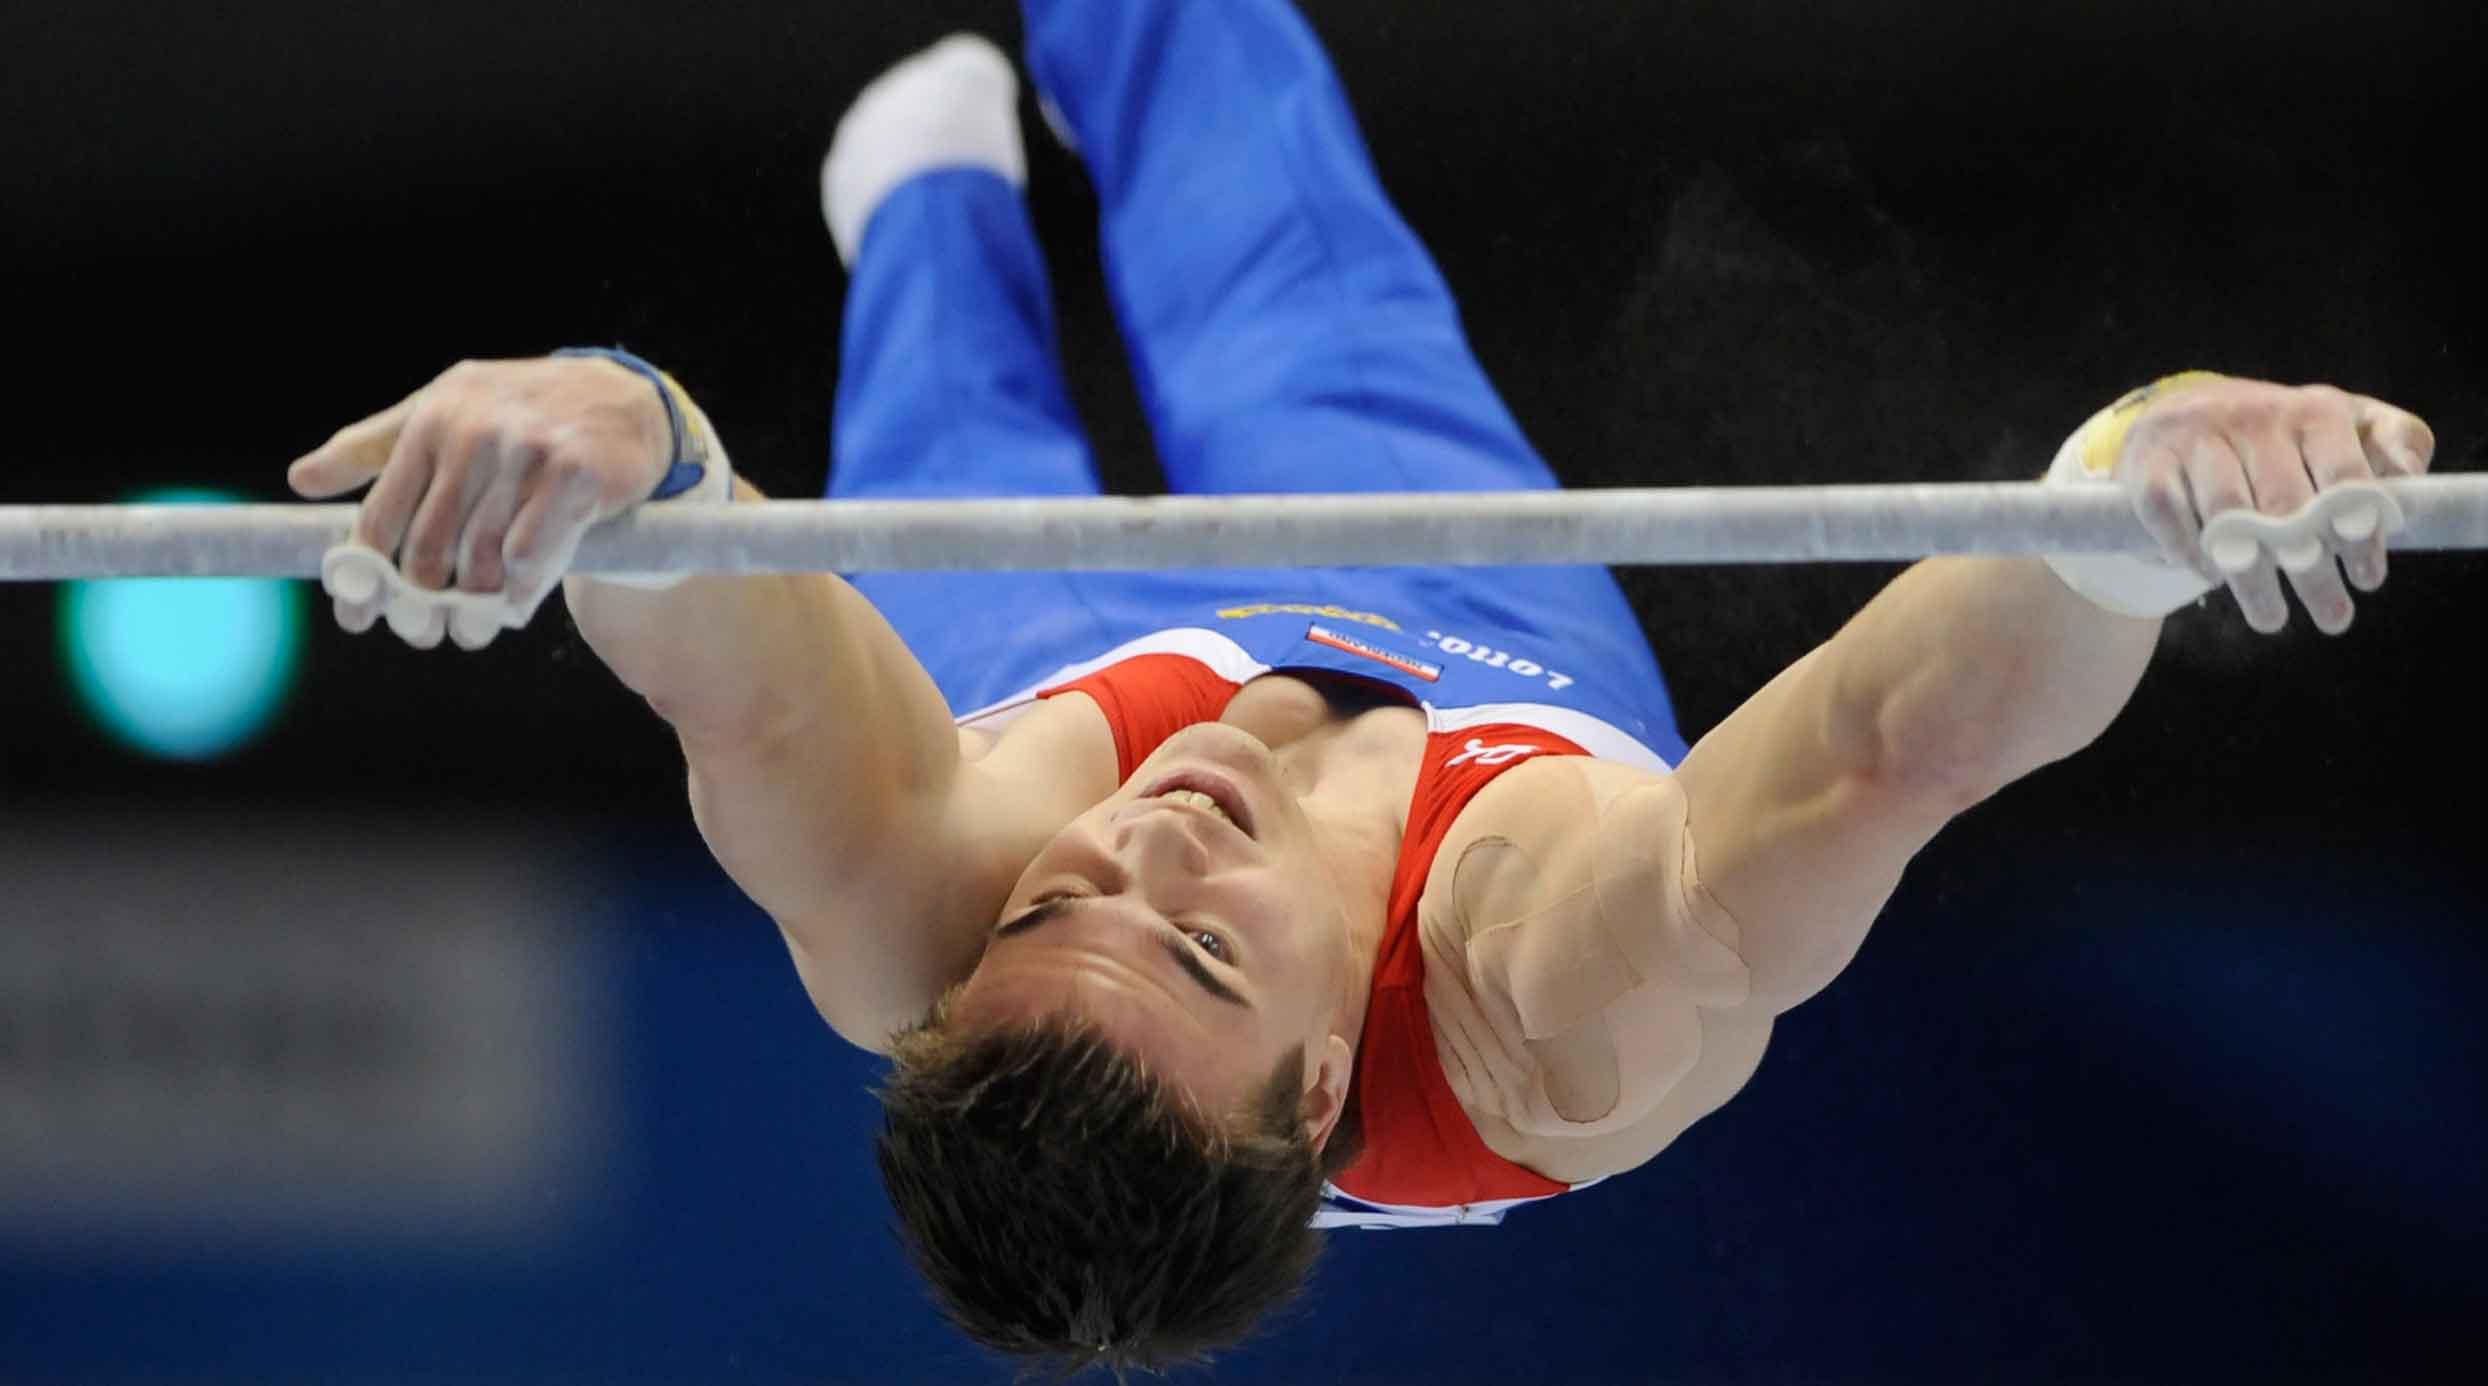 Shout out to Netherlands gymnastics.